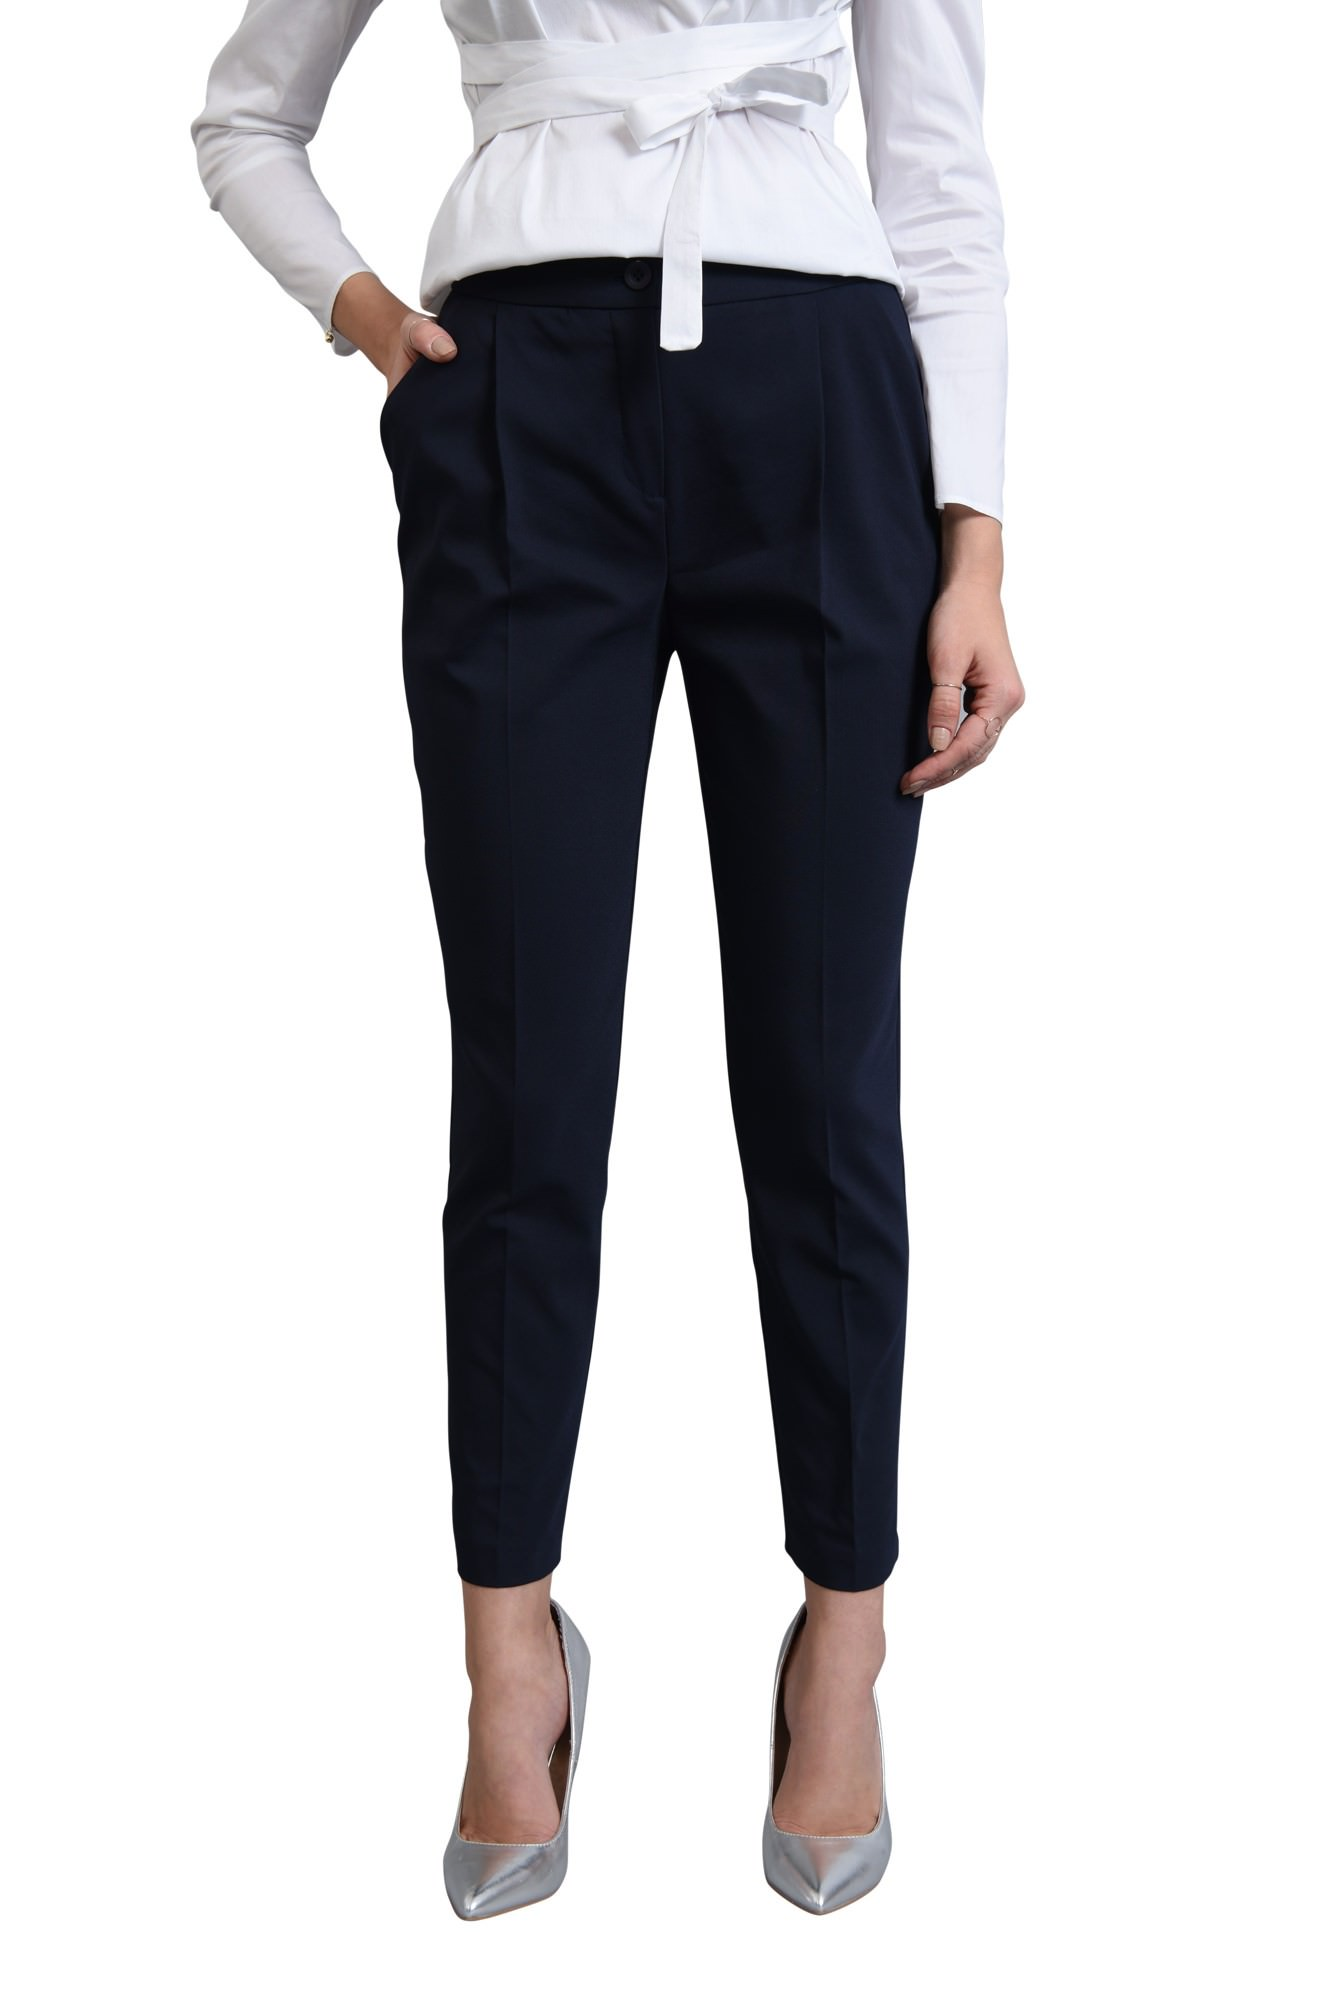 PANTALON OFFICE PT 180-BLEUMARIN